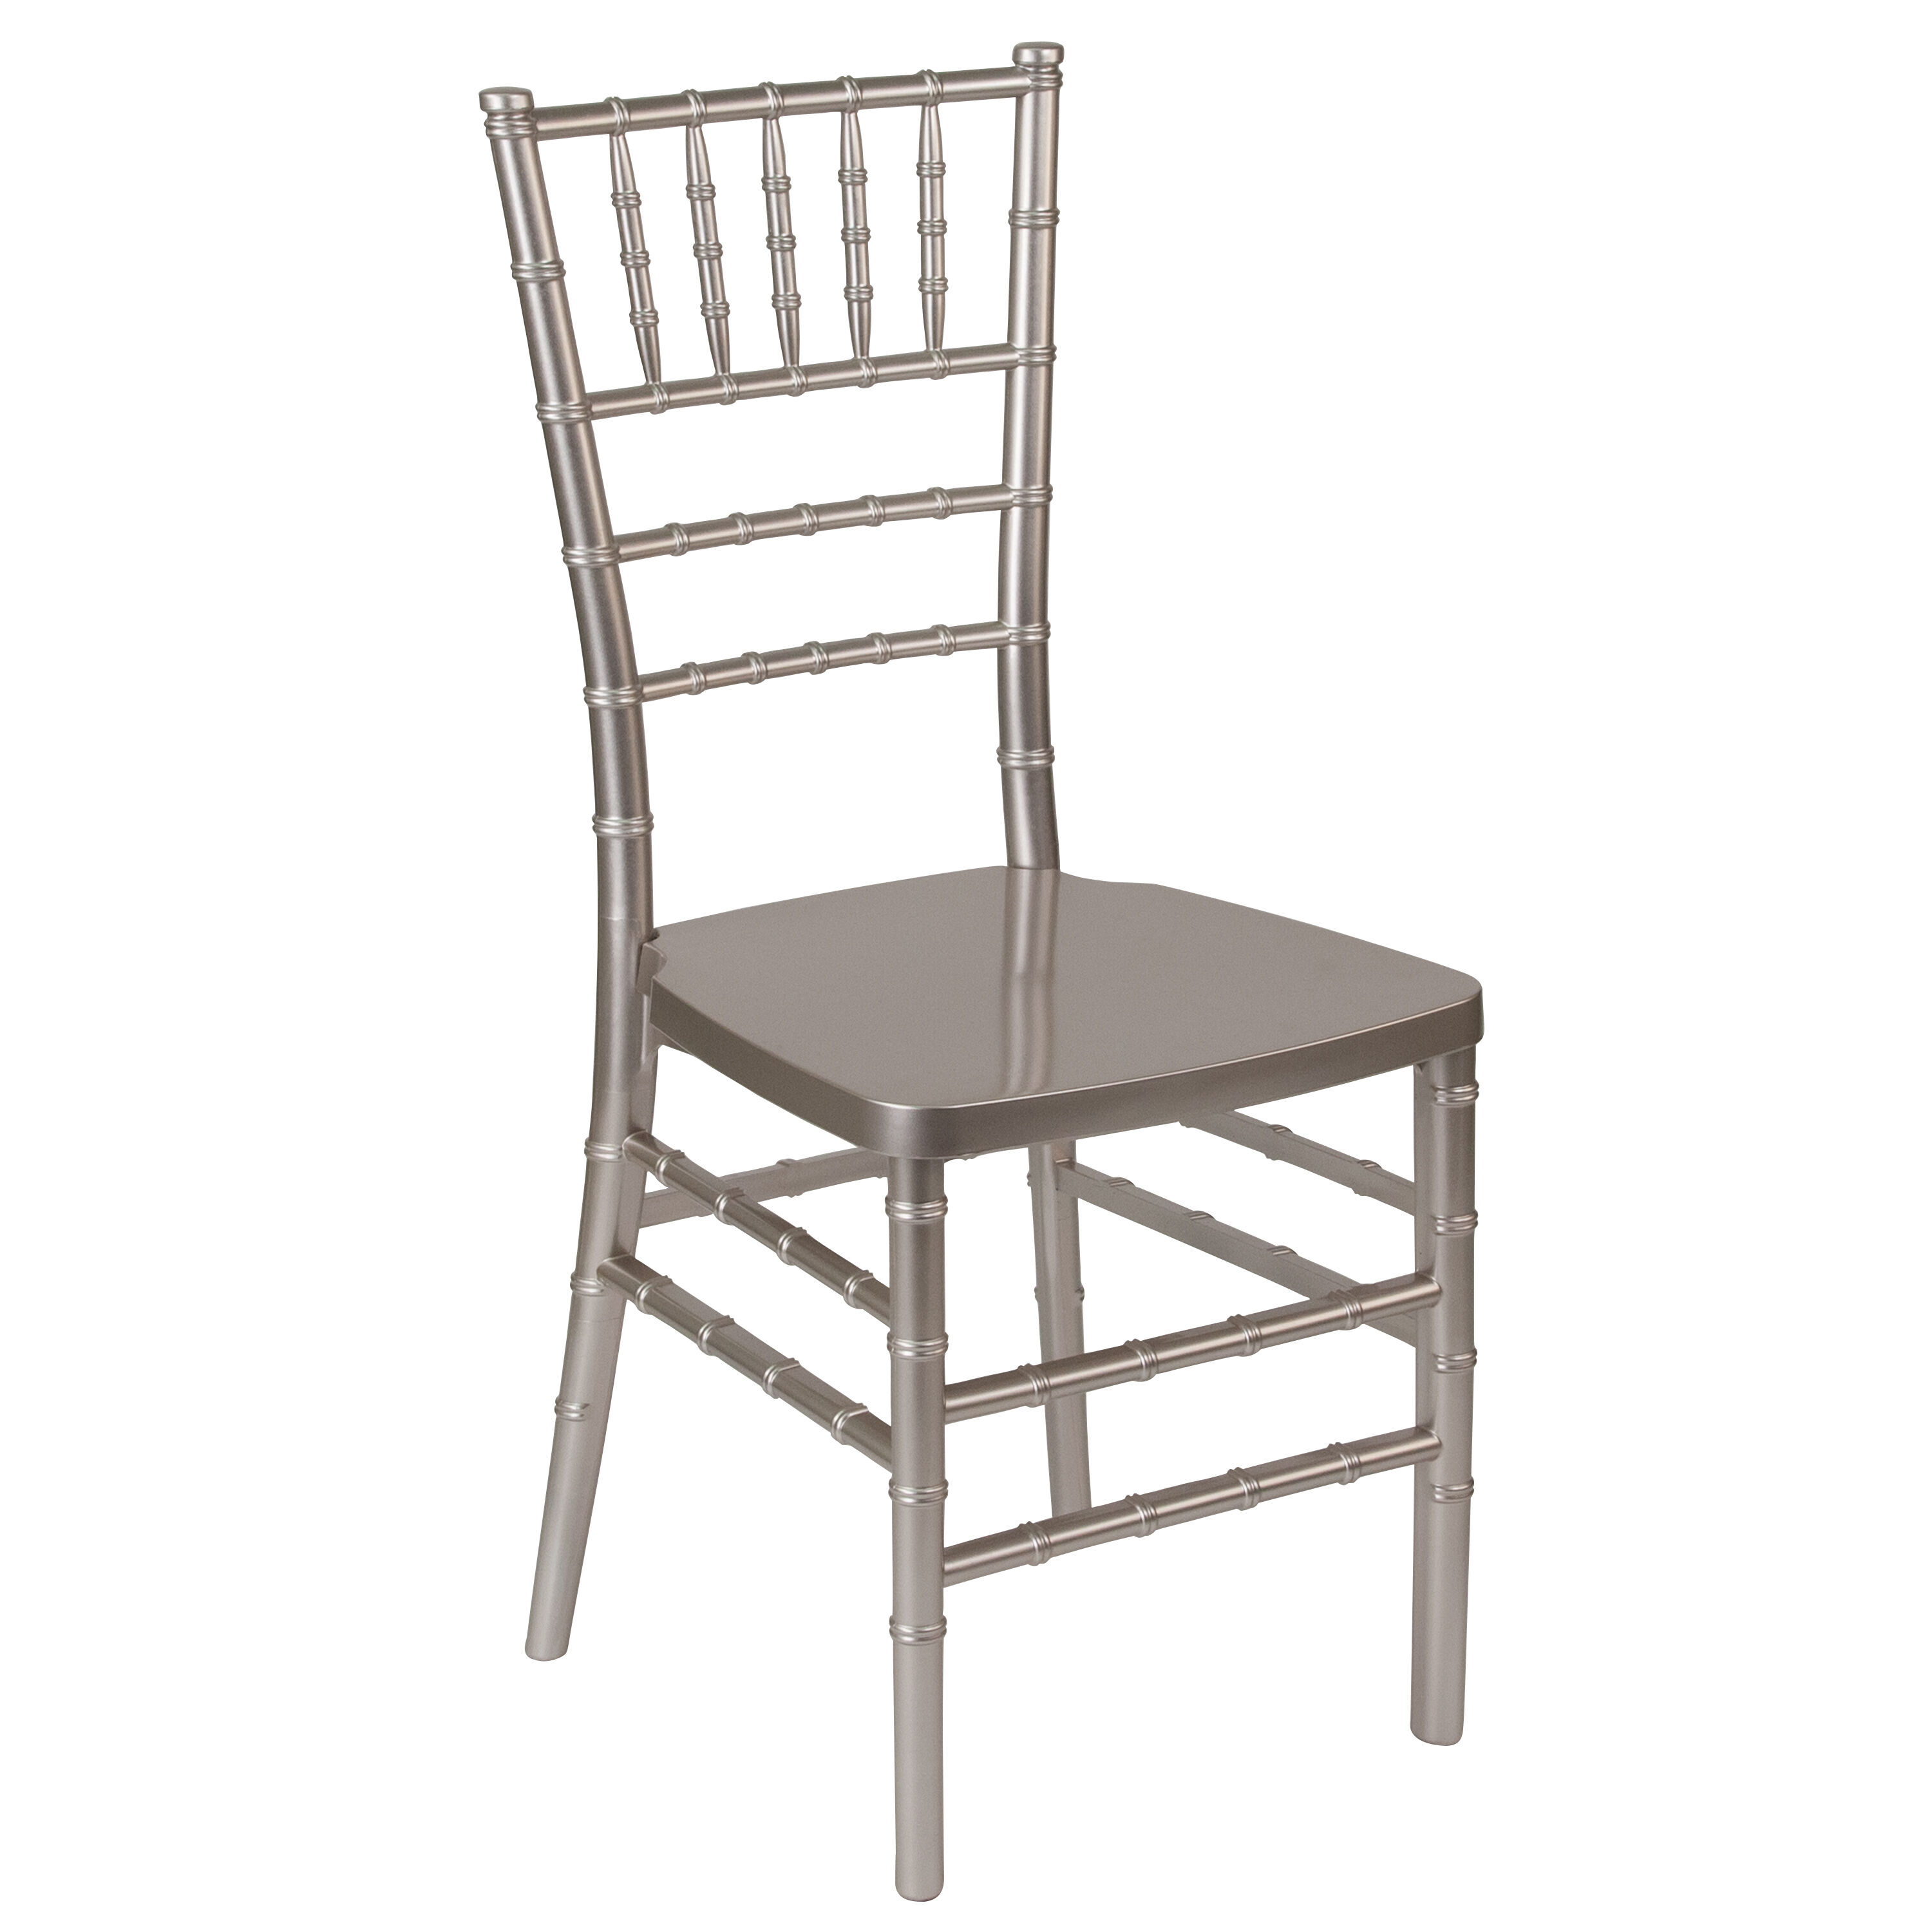 Resin Chairs Hercules Premium Series Pewter Resin Stacking Chiavari Chair With Free Cushion